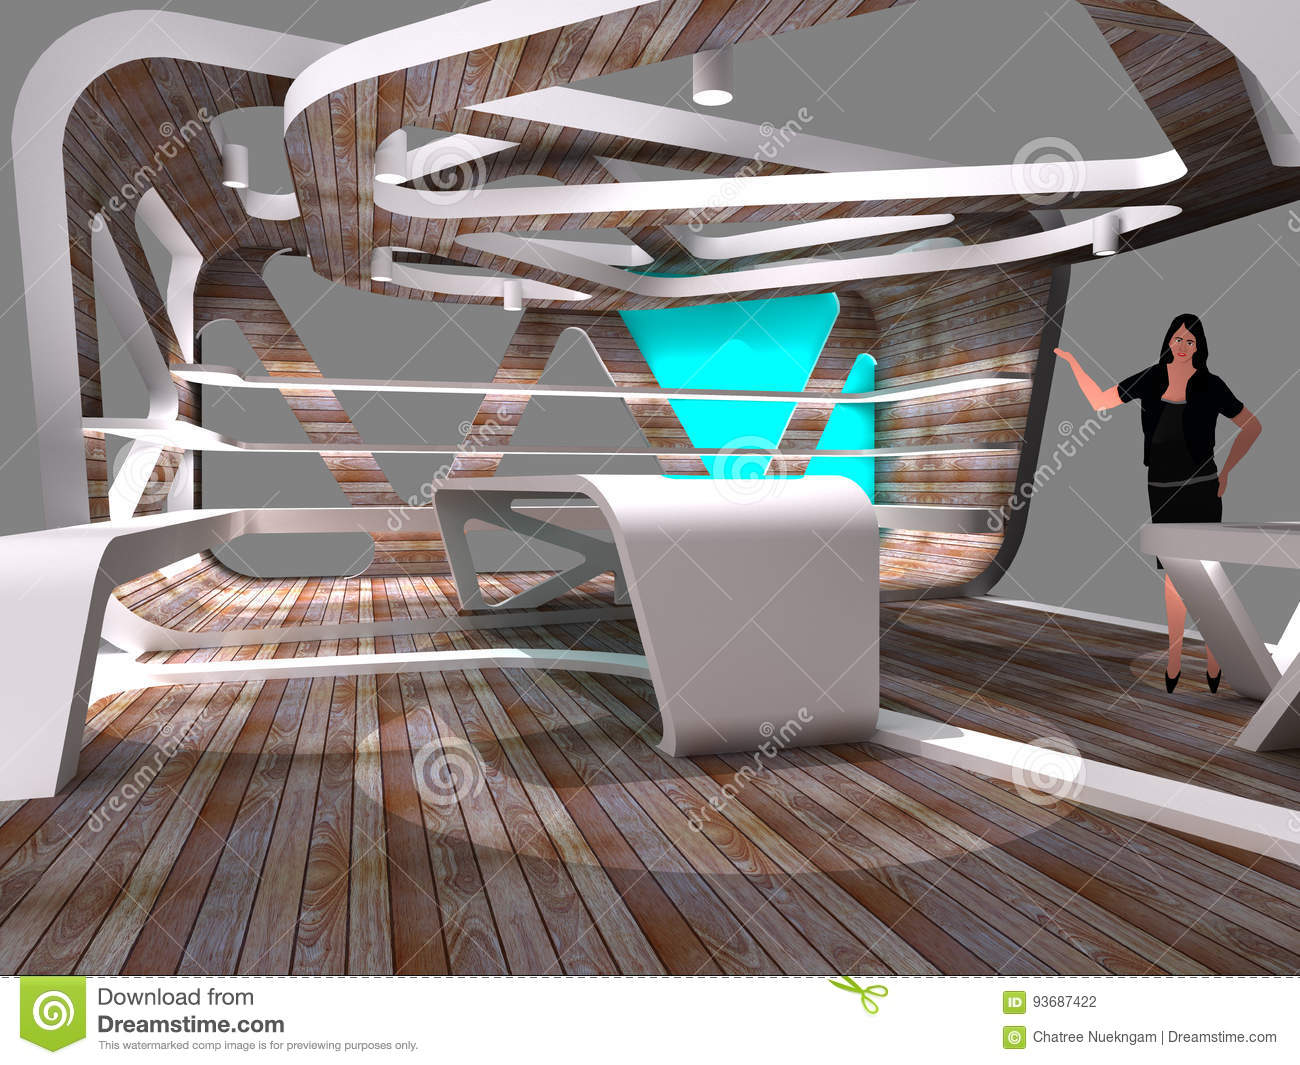 D Exhibition Design : Modern booth exhibition design stock illustration illustration